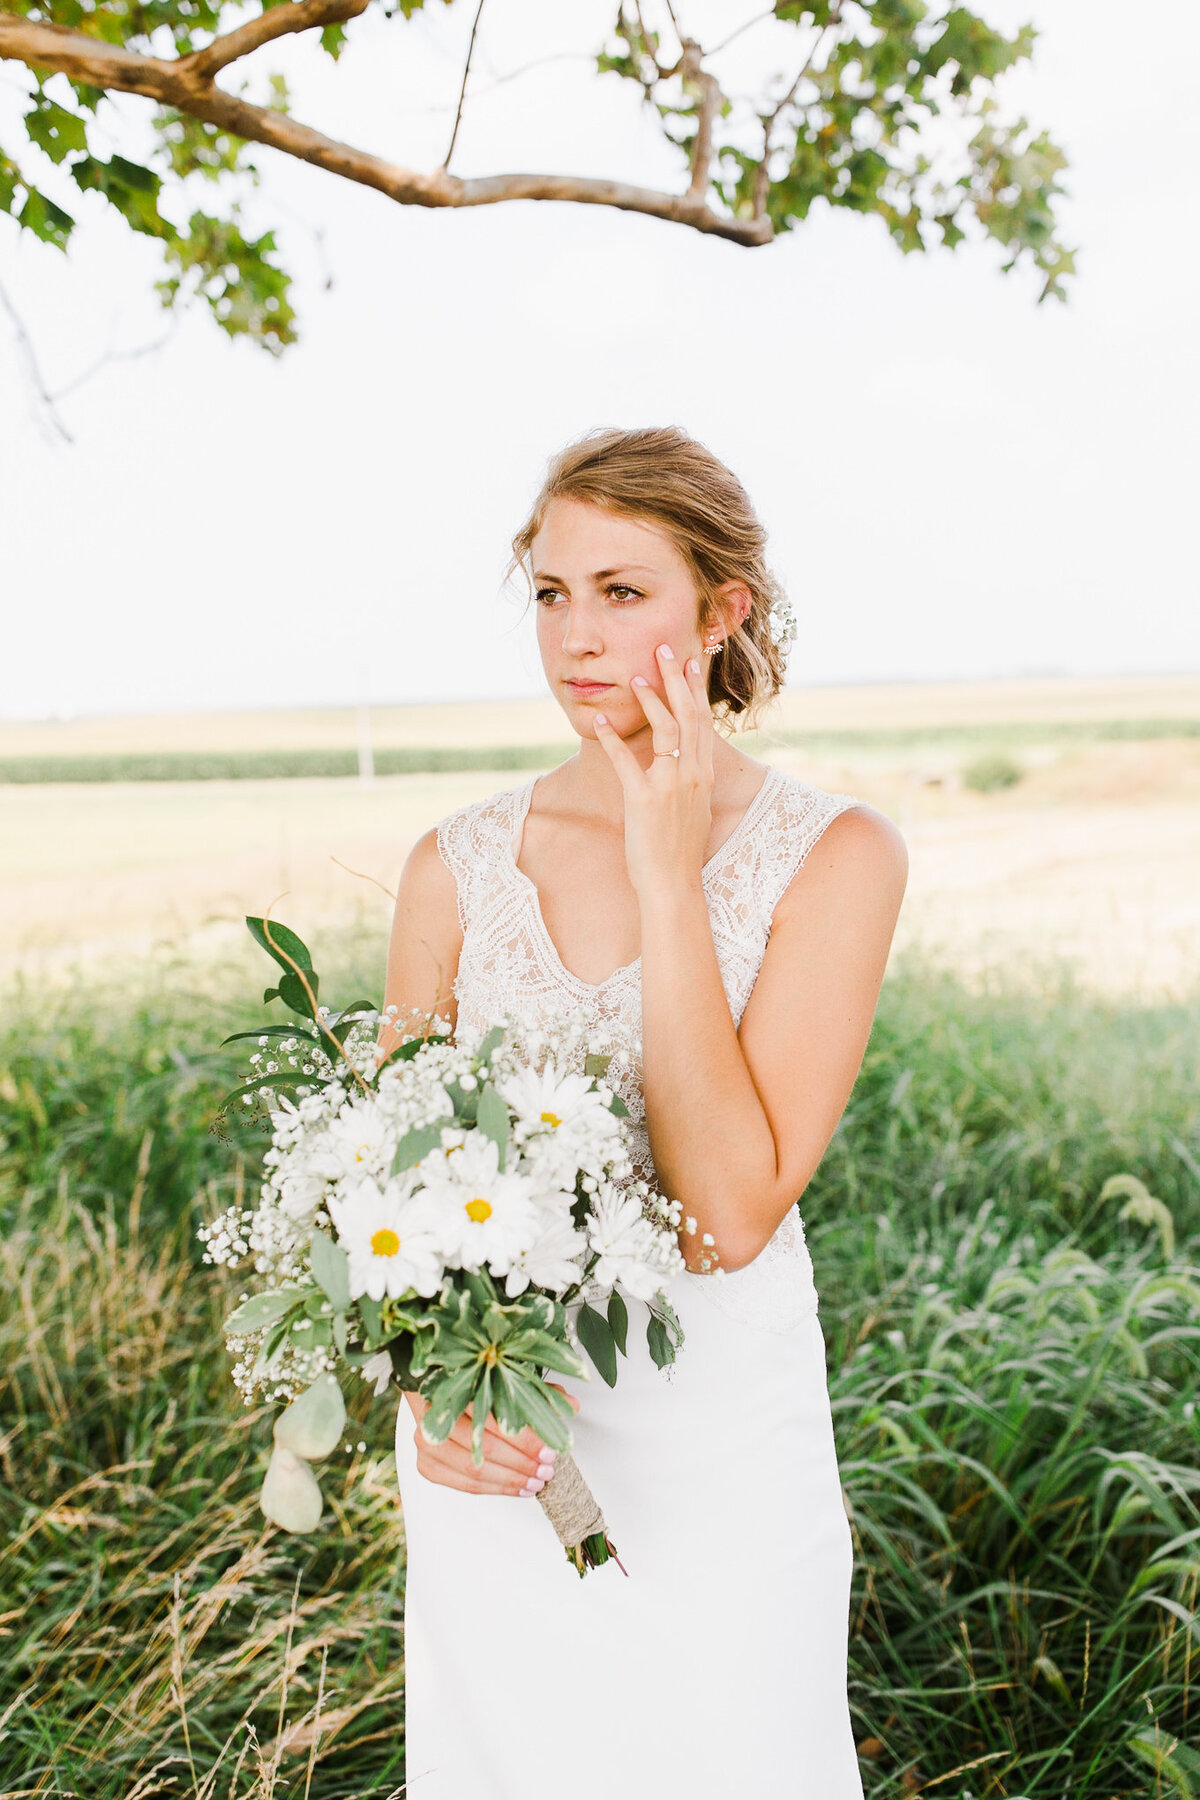 Erika-Taphorn-Photography-Peoria-Illinois-Wedding-Photographer-49